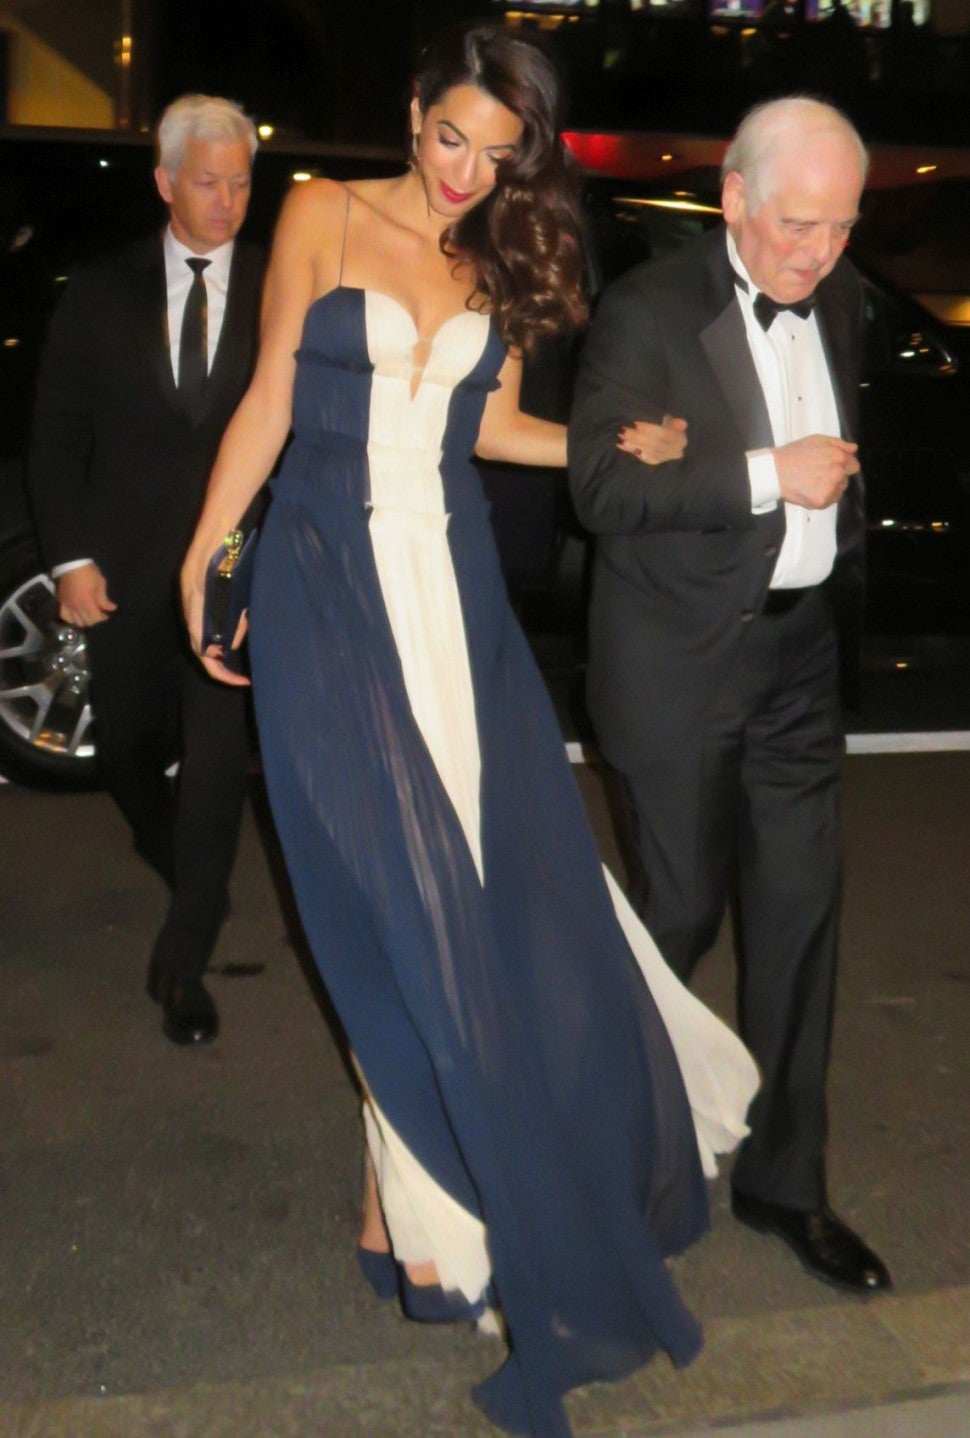 Amal Clooney with her father in law